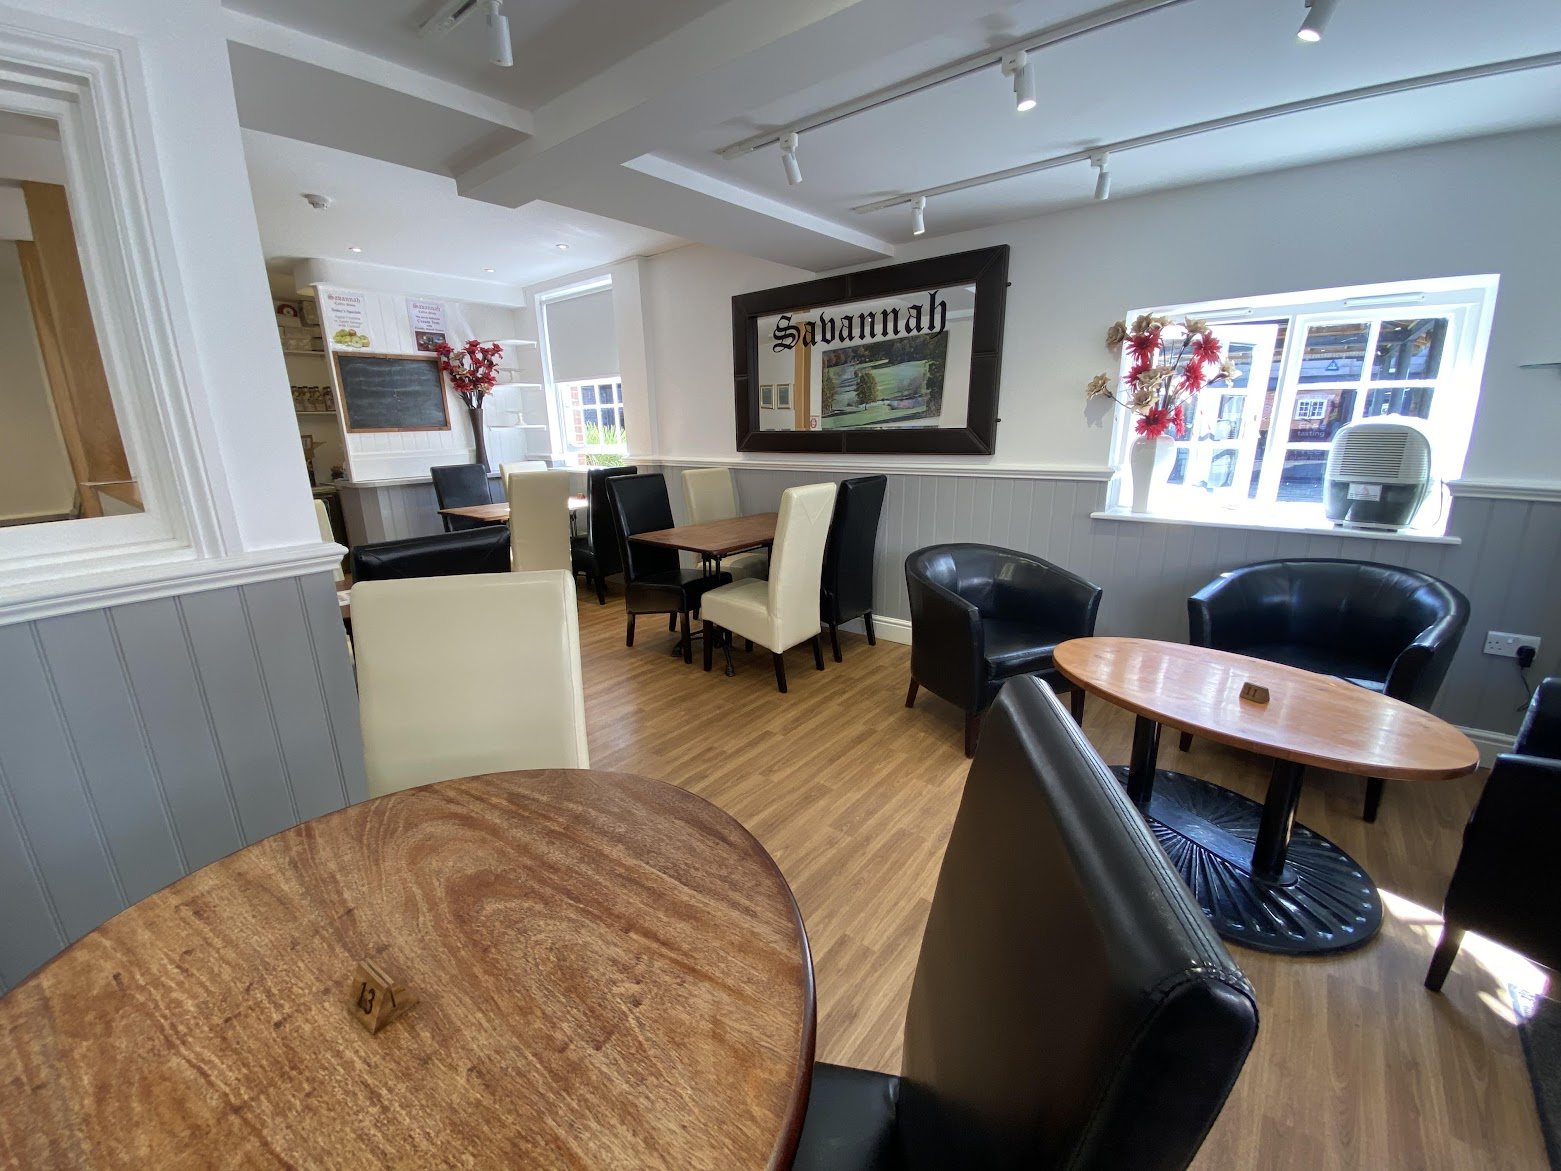 Savannah Coffee House Tenterden